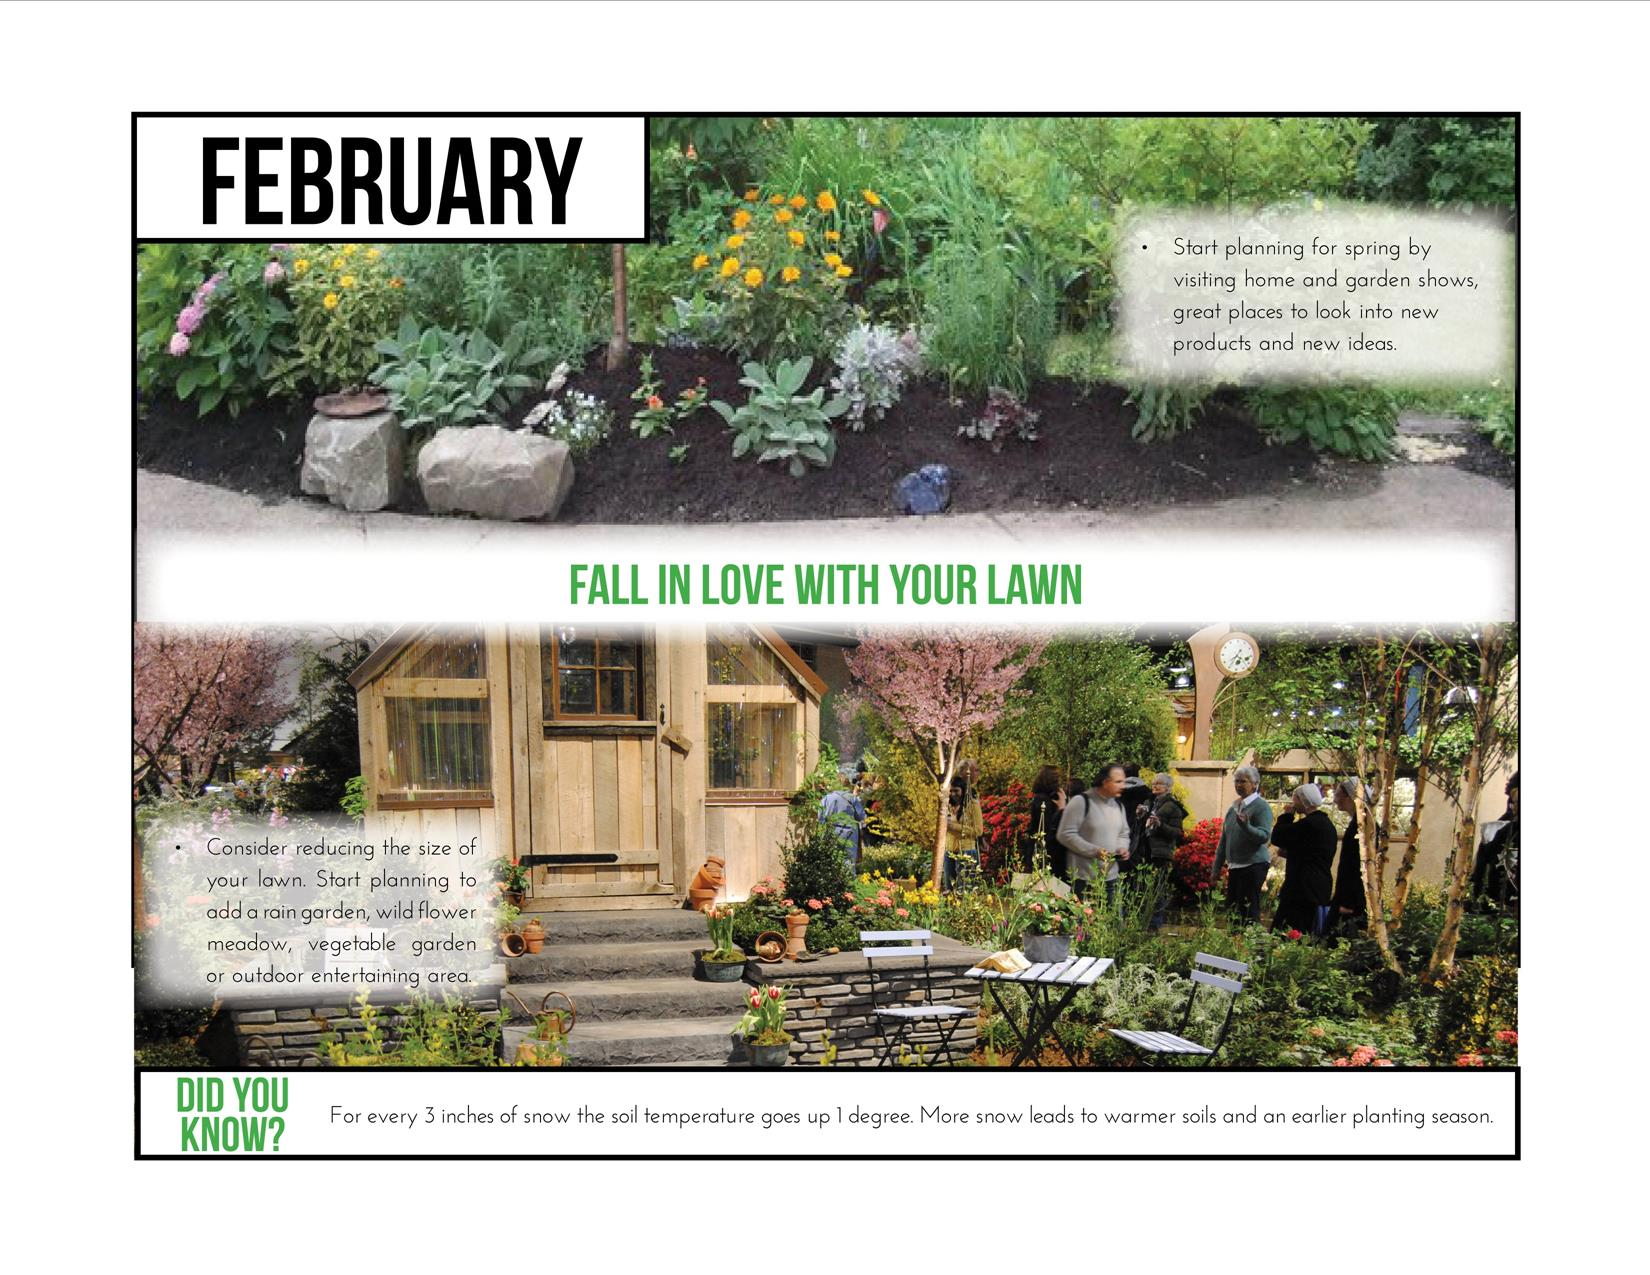 february stormwater image